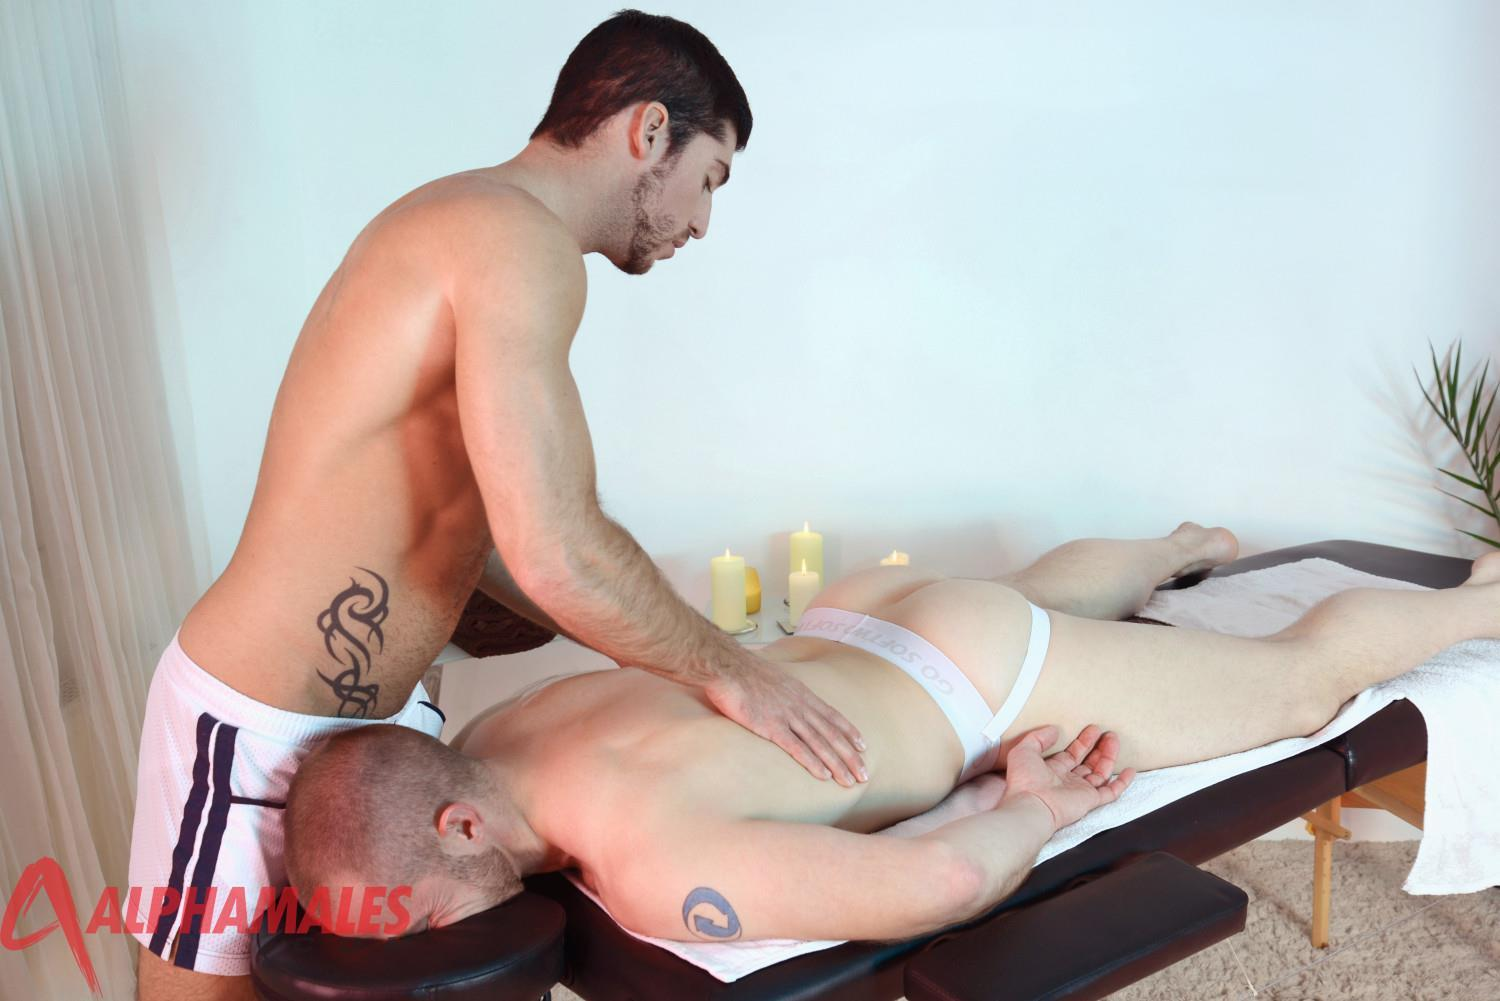 AlphaMales Leo Domenico and Adam Herst Jocks With Big Uncut Cocks 01 Jocks With Big Uncut Cocks Fucking During A Massage